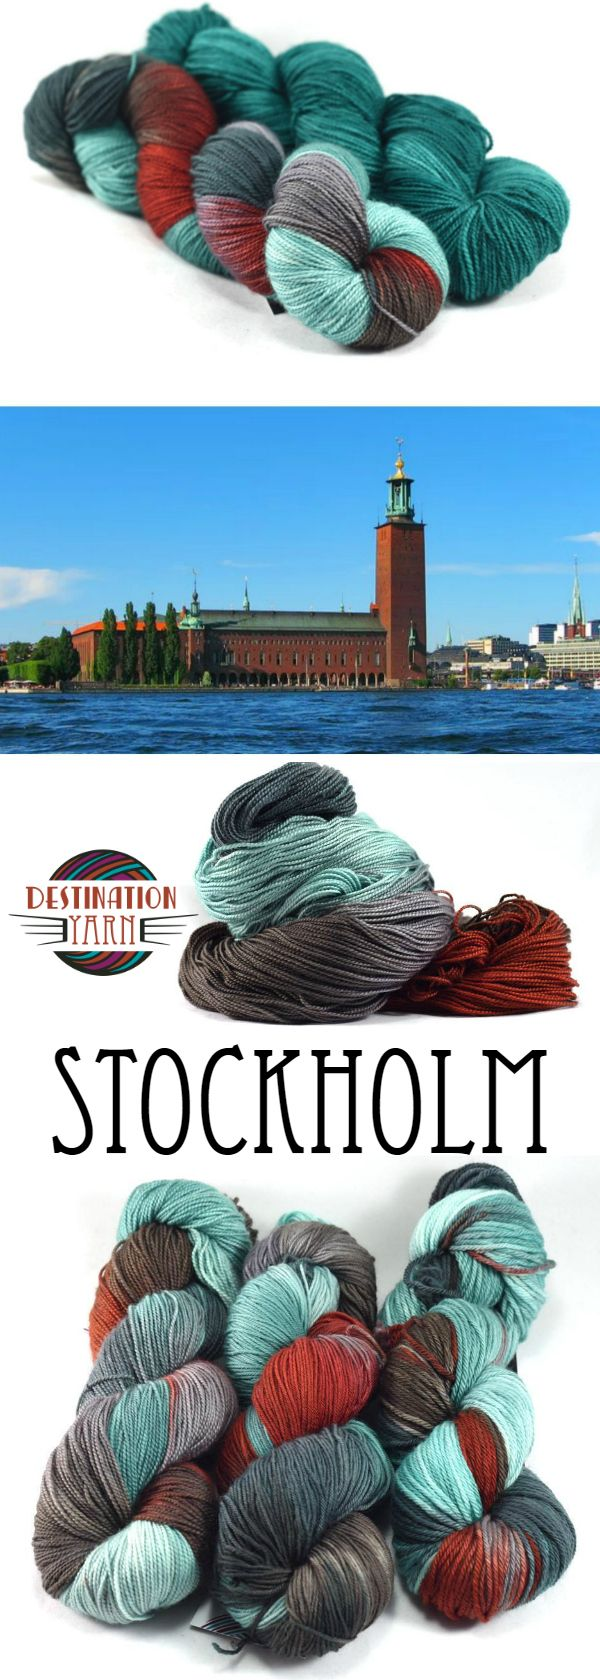 Inspired by the colors of the Stockholm City Hall-patina teals from light through grayer and darker shades, with pops of brick red and gray. Hand-dyed, sock/fingering weight yarn for knitting, crochet, and DIY yarn crafts.